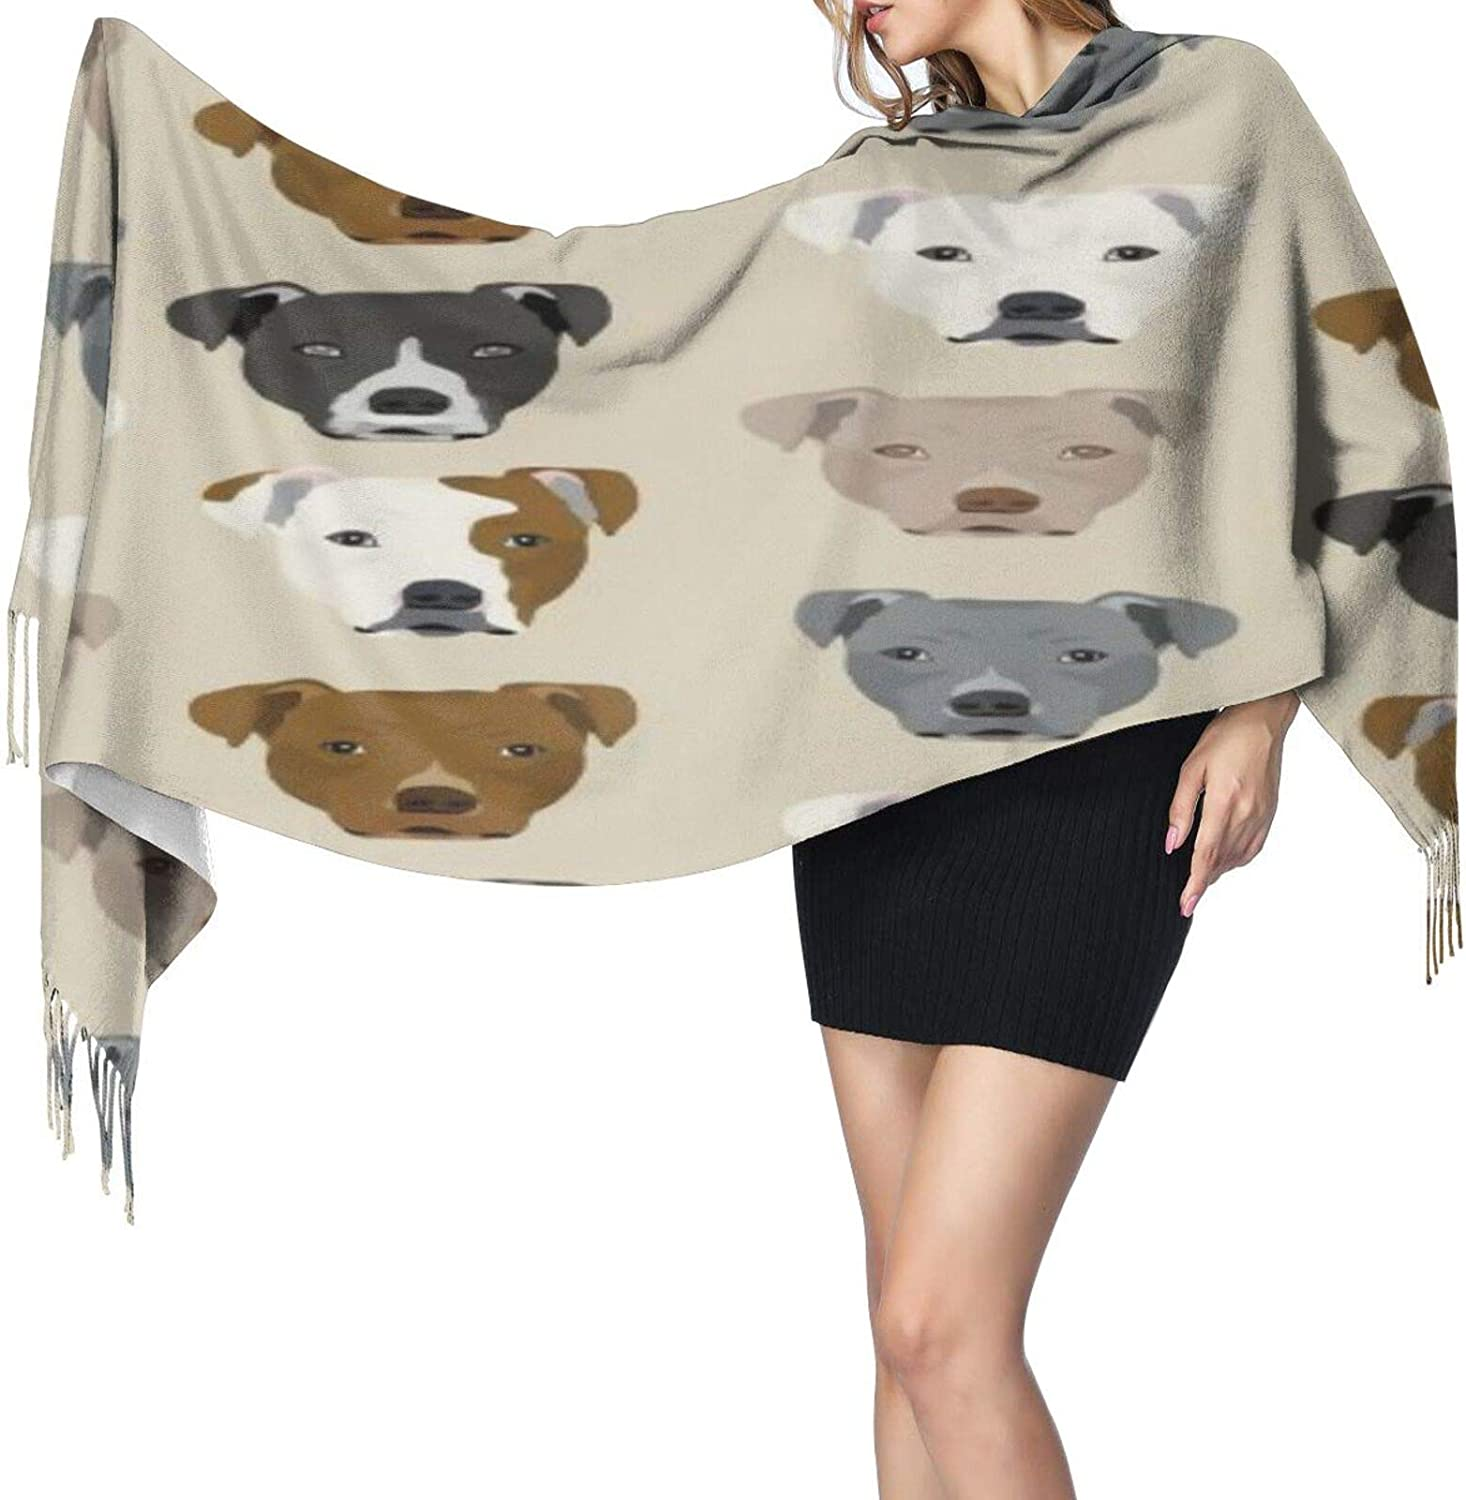 Cashmere fringed scarf Pitbull Heads winter extra large scarf